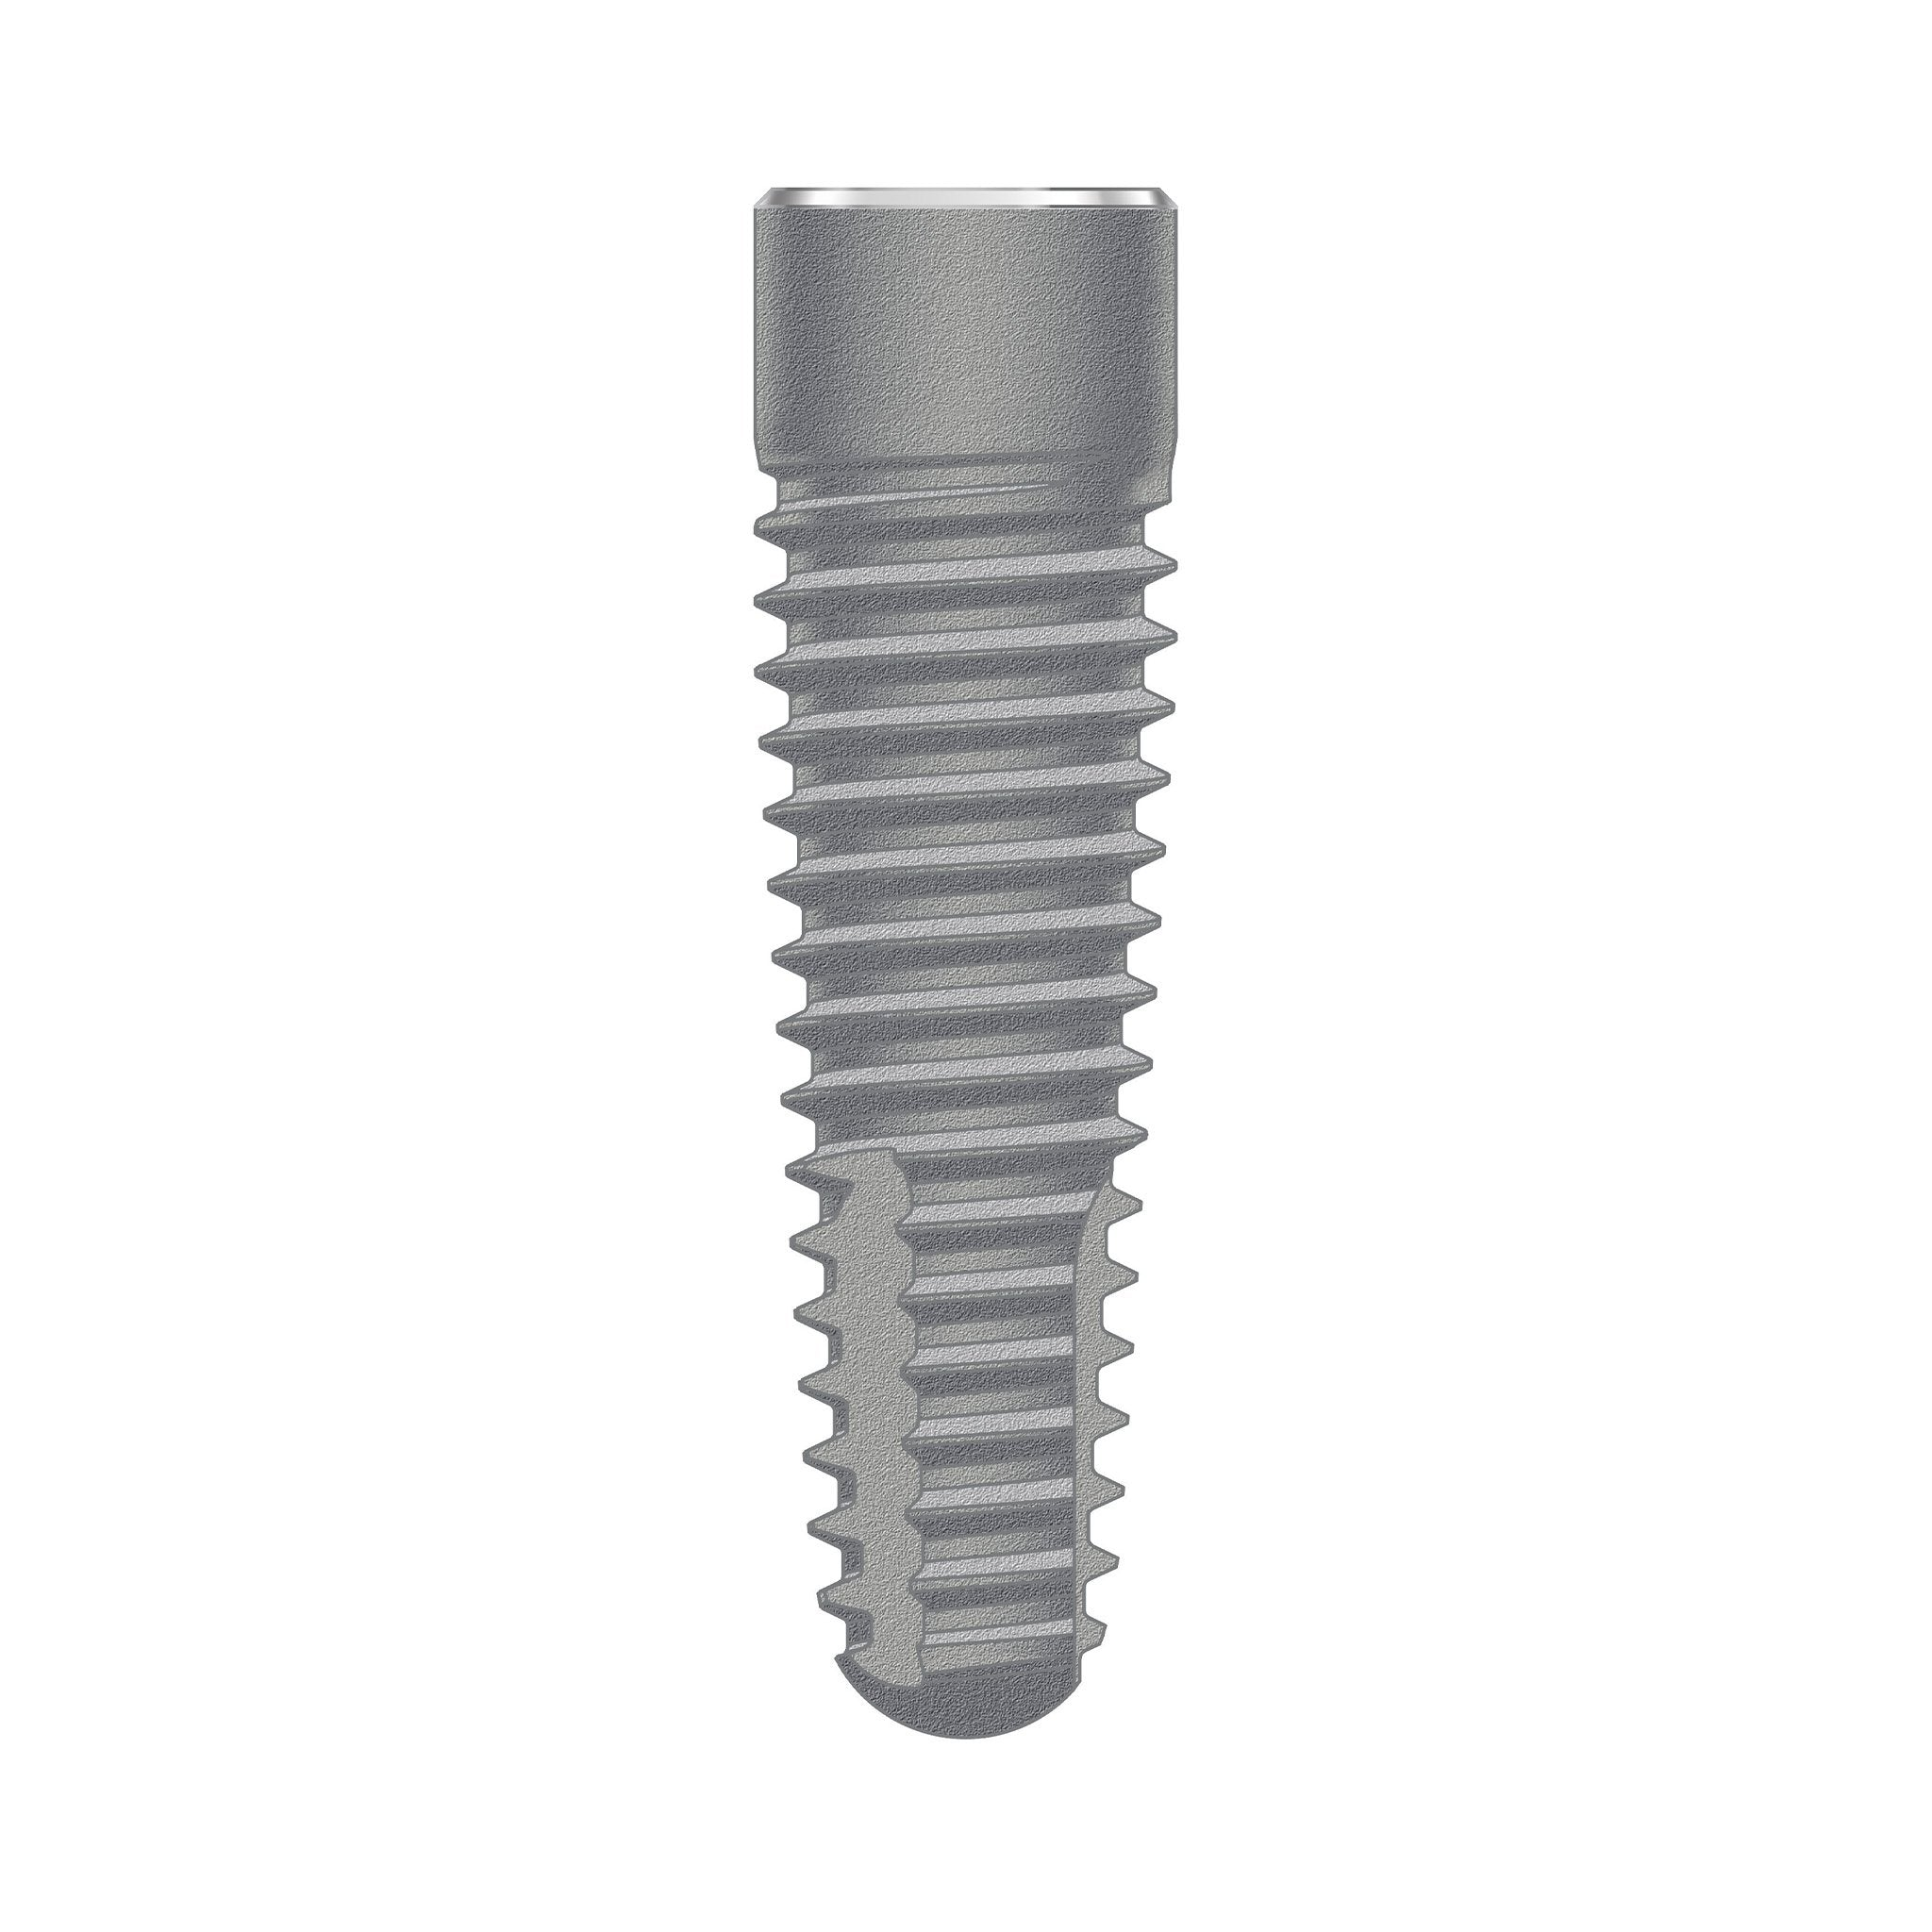 PrimaConnex® TC Tapered Implant SD Ø 3.5 x 11.5mm | K3